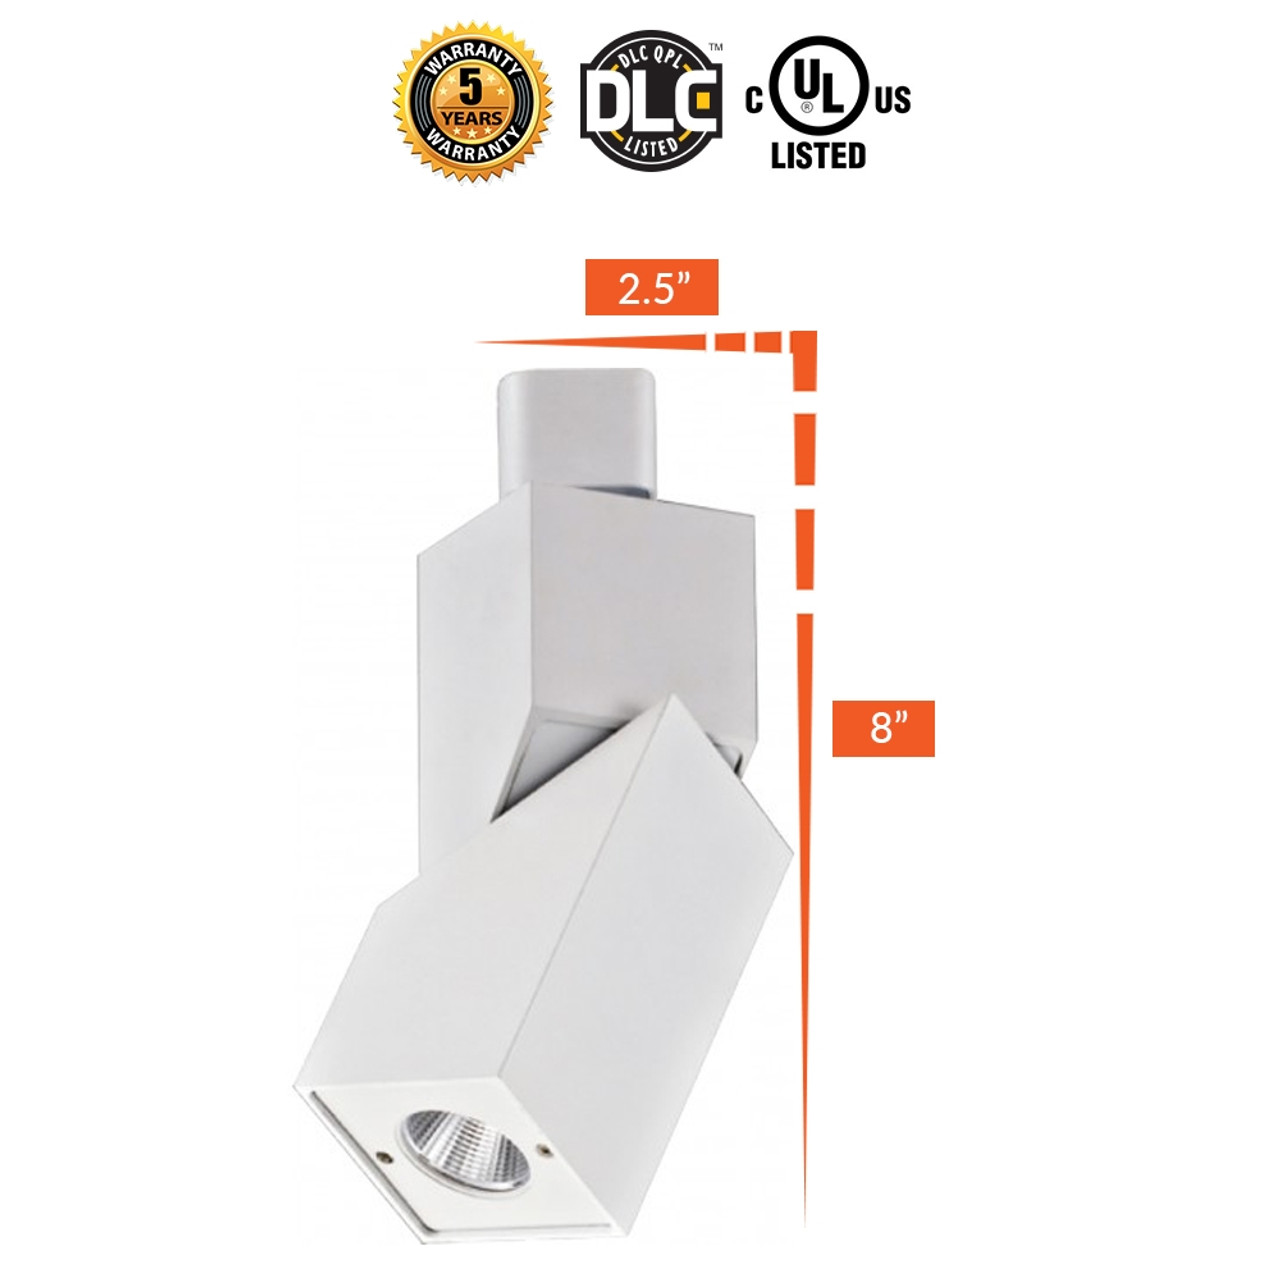 led track lighting heads choose your shape and color temperature fits halo h track